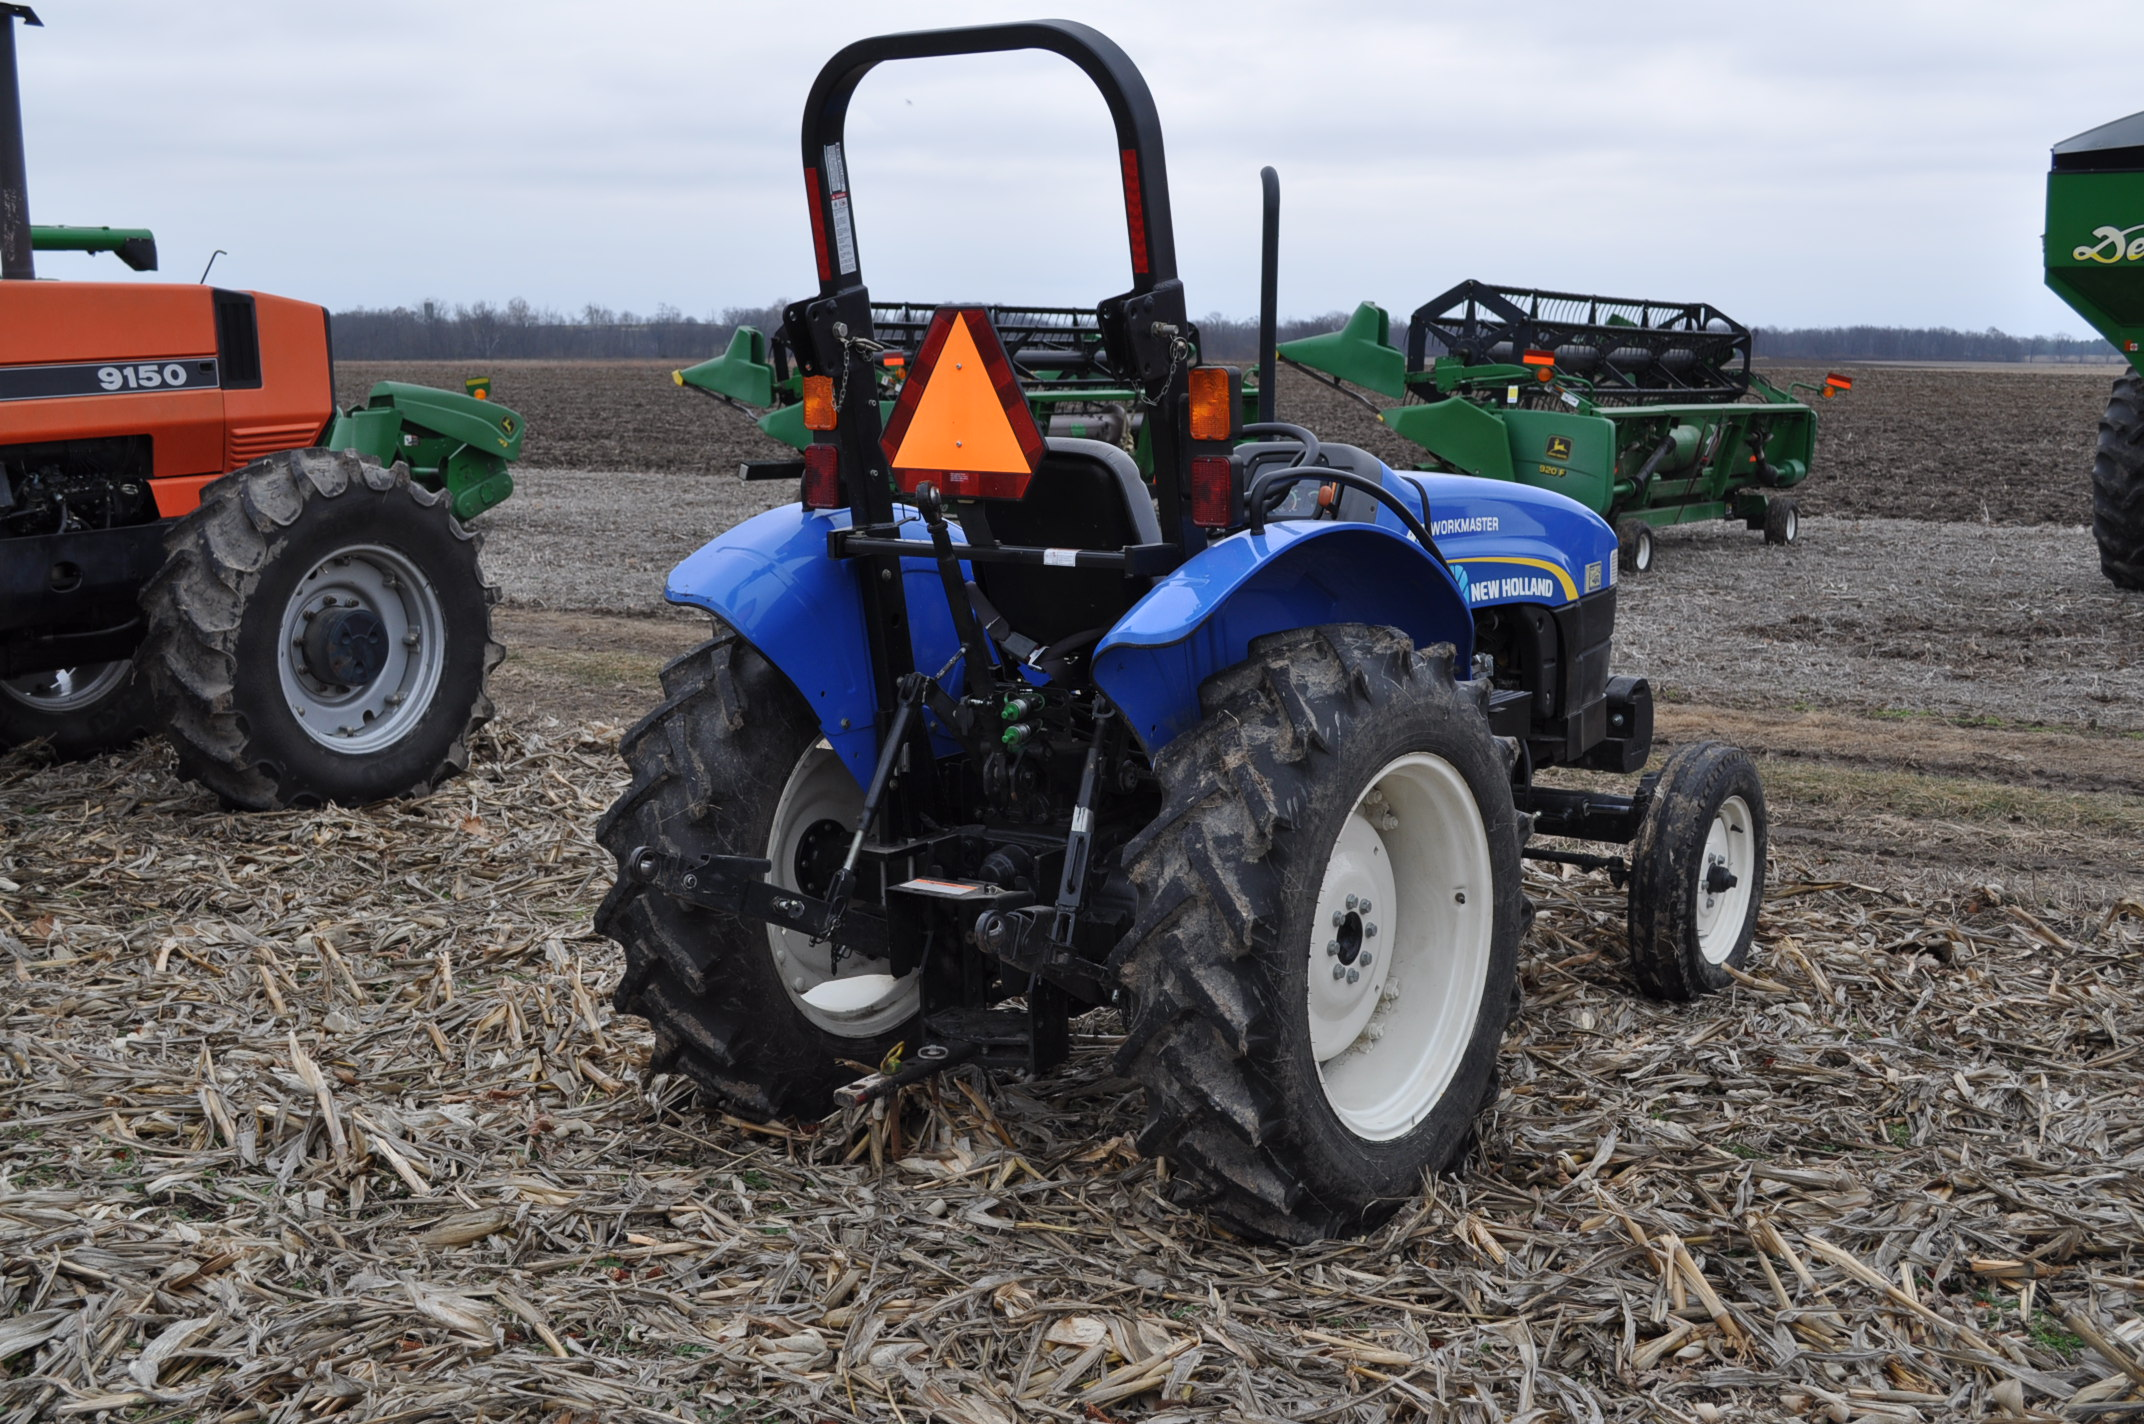 New Holland Workmaster 45 tractor, front wts, 12.4/11-28 rear, 6.00-16 front, shuttle shift, diesel, - Image 3 of 14